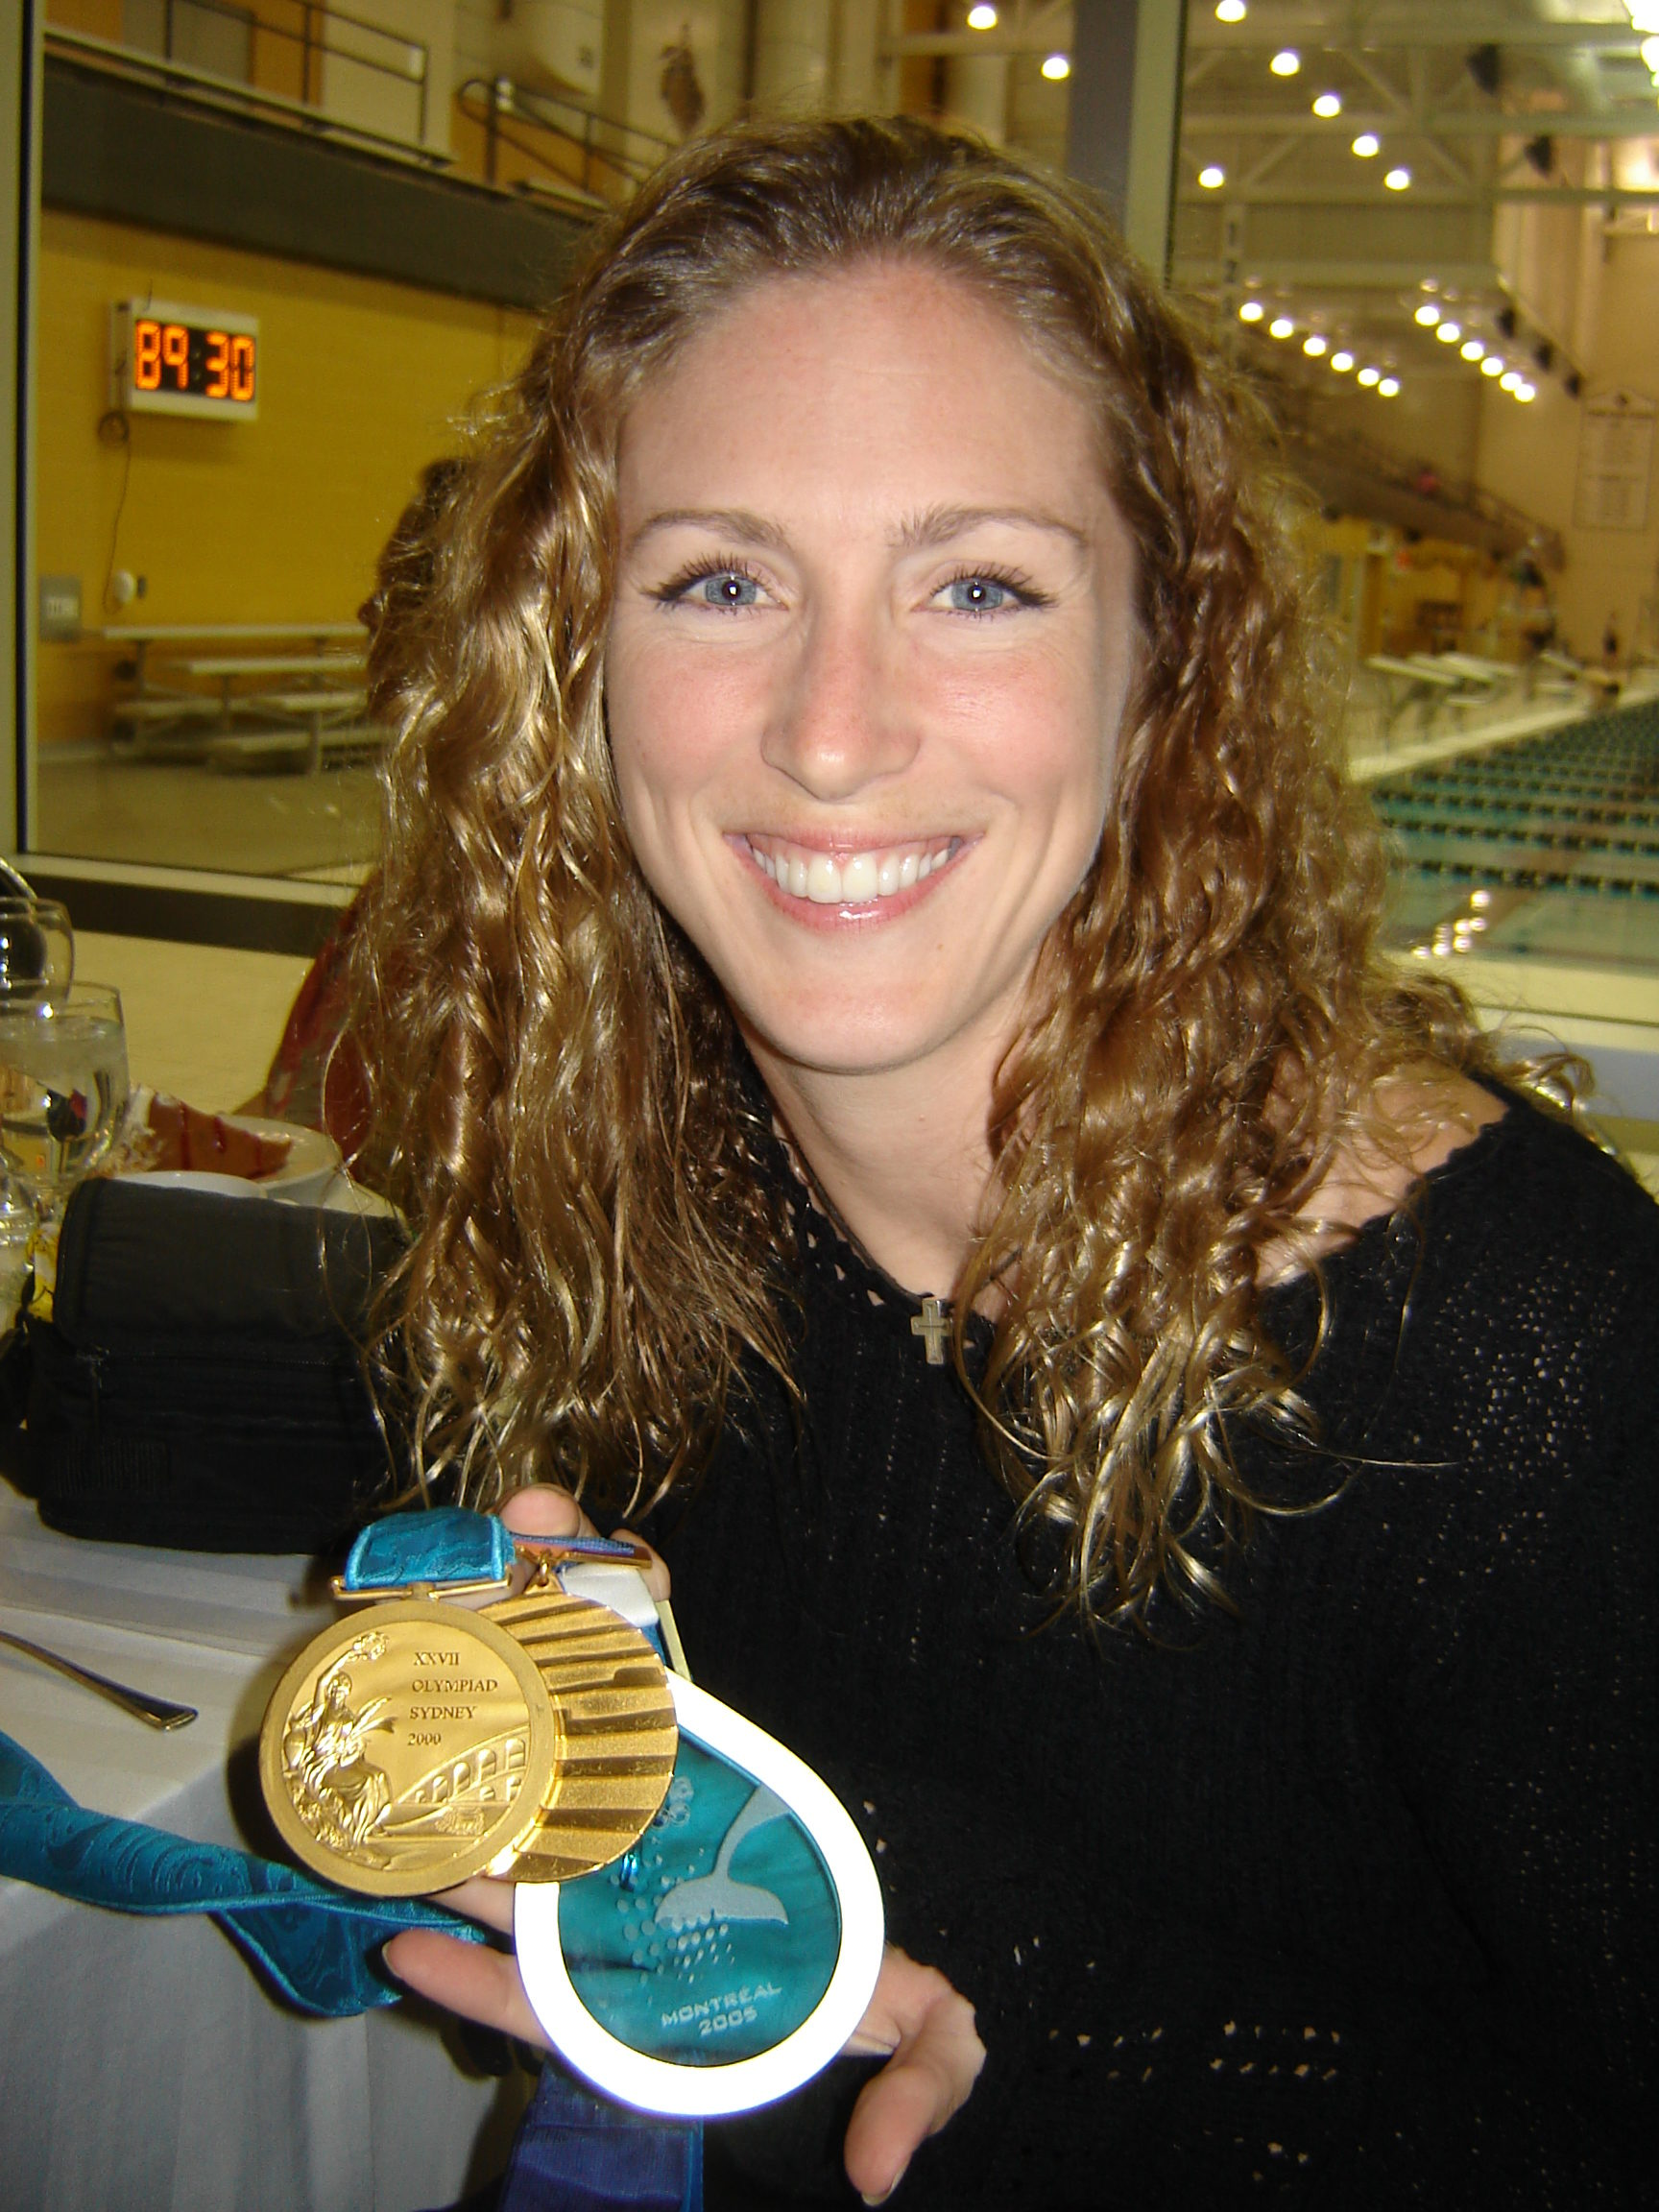 Laura Wilkinson and her 3 Gold Medals